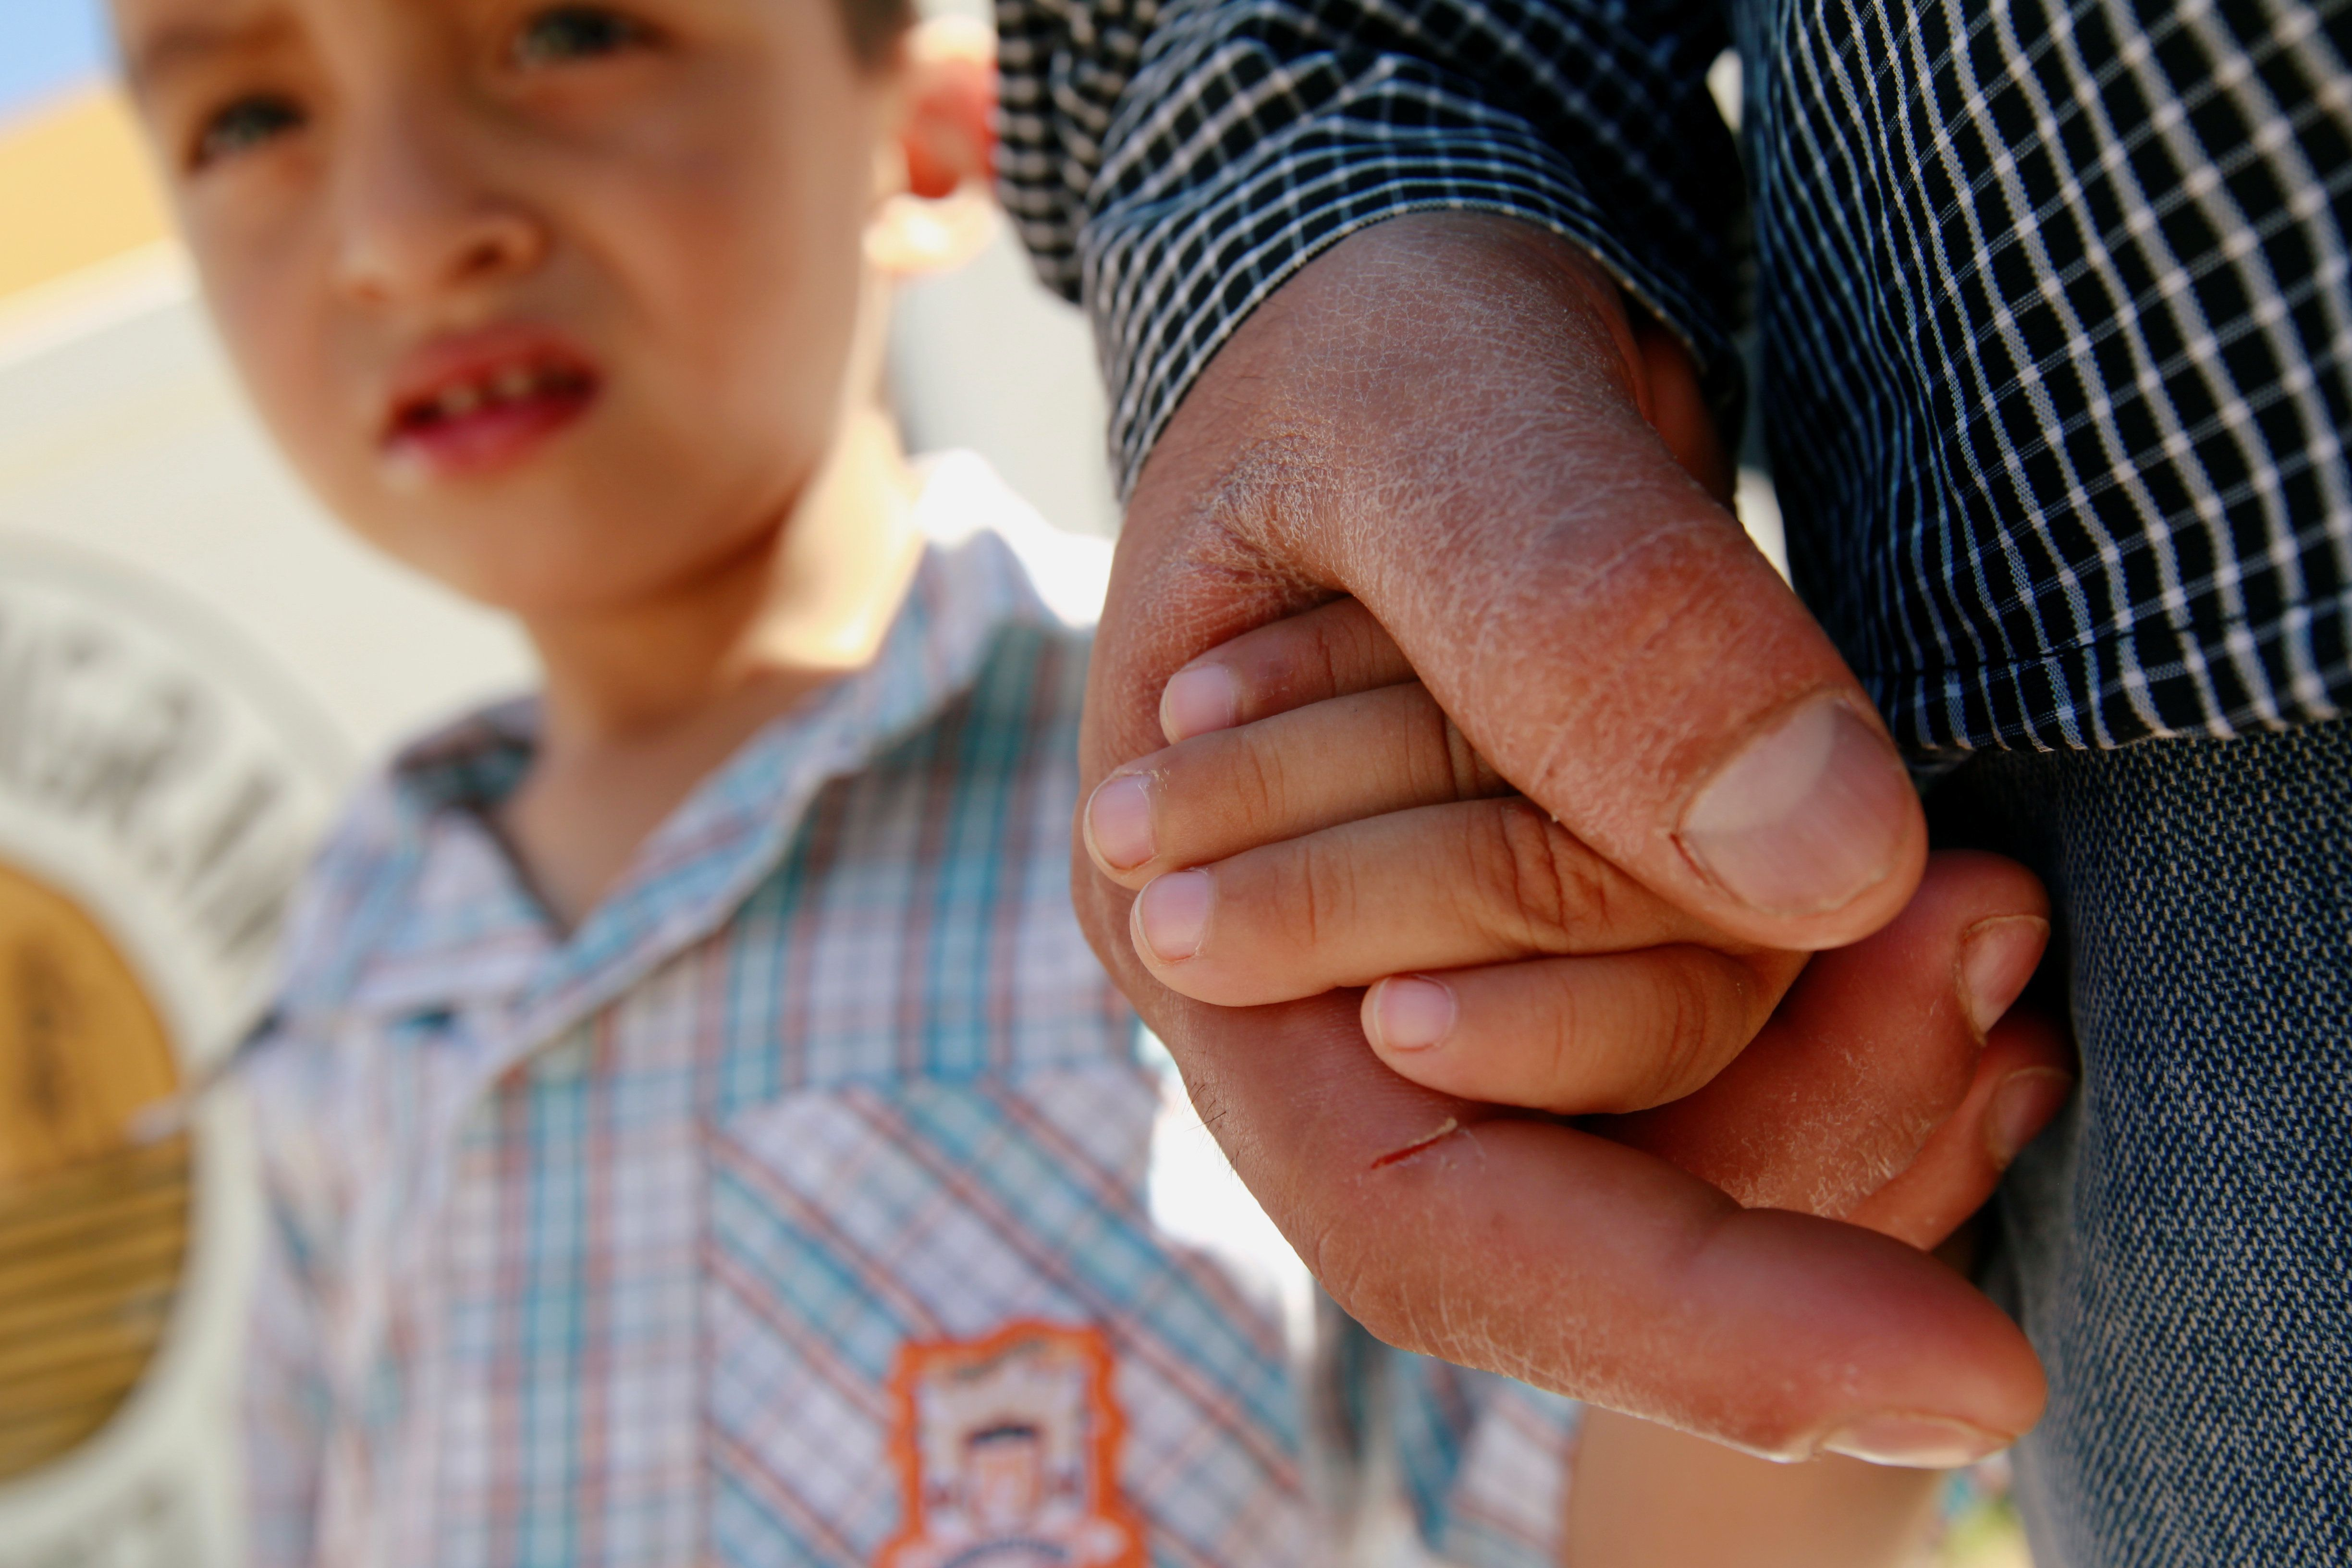 Salvadoran migrant Epigmenio Centeno holds the hand of his three-year old son Steven Atonay outside the shelter House of the Migrant, after he has decided to stay with his children in Mexico due to U.S. President Donald Trump's child separation policy, in Ciudad Juarez, Mexico June 19, 2018. REUTERS/Jose Luis Gonzalez